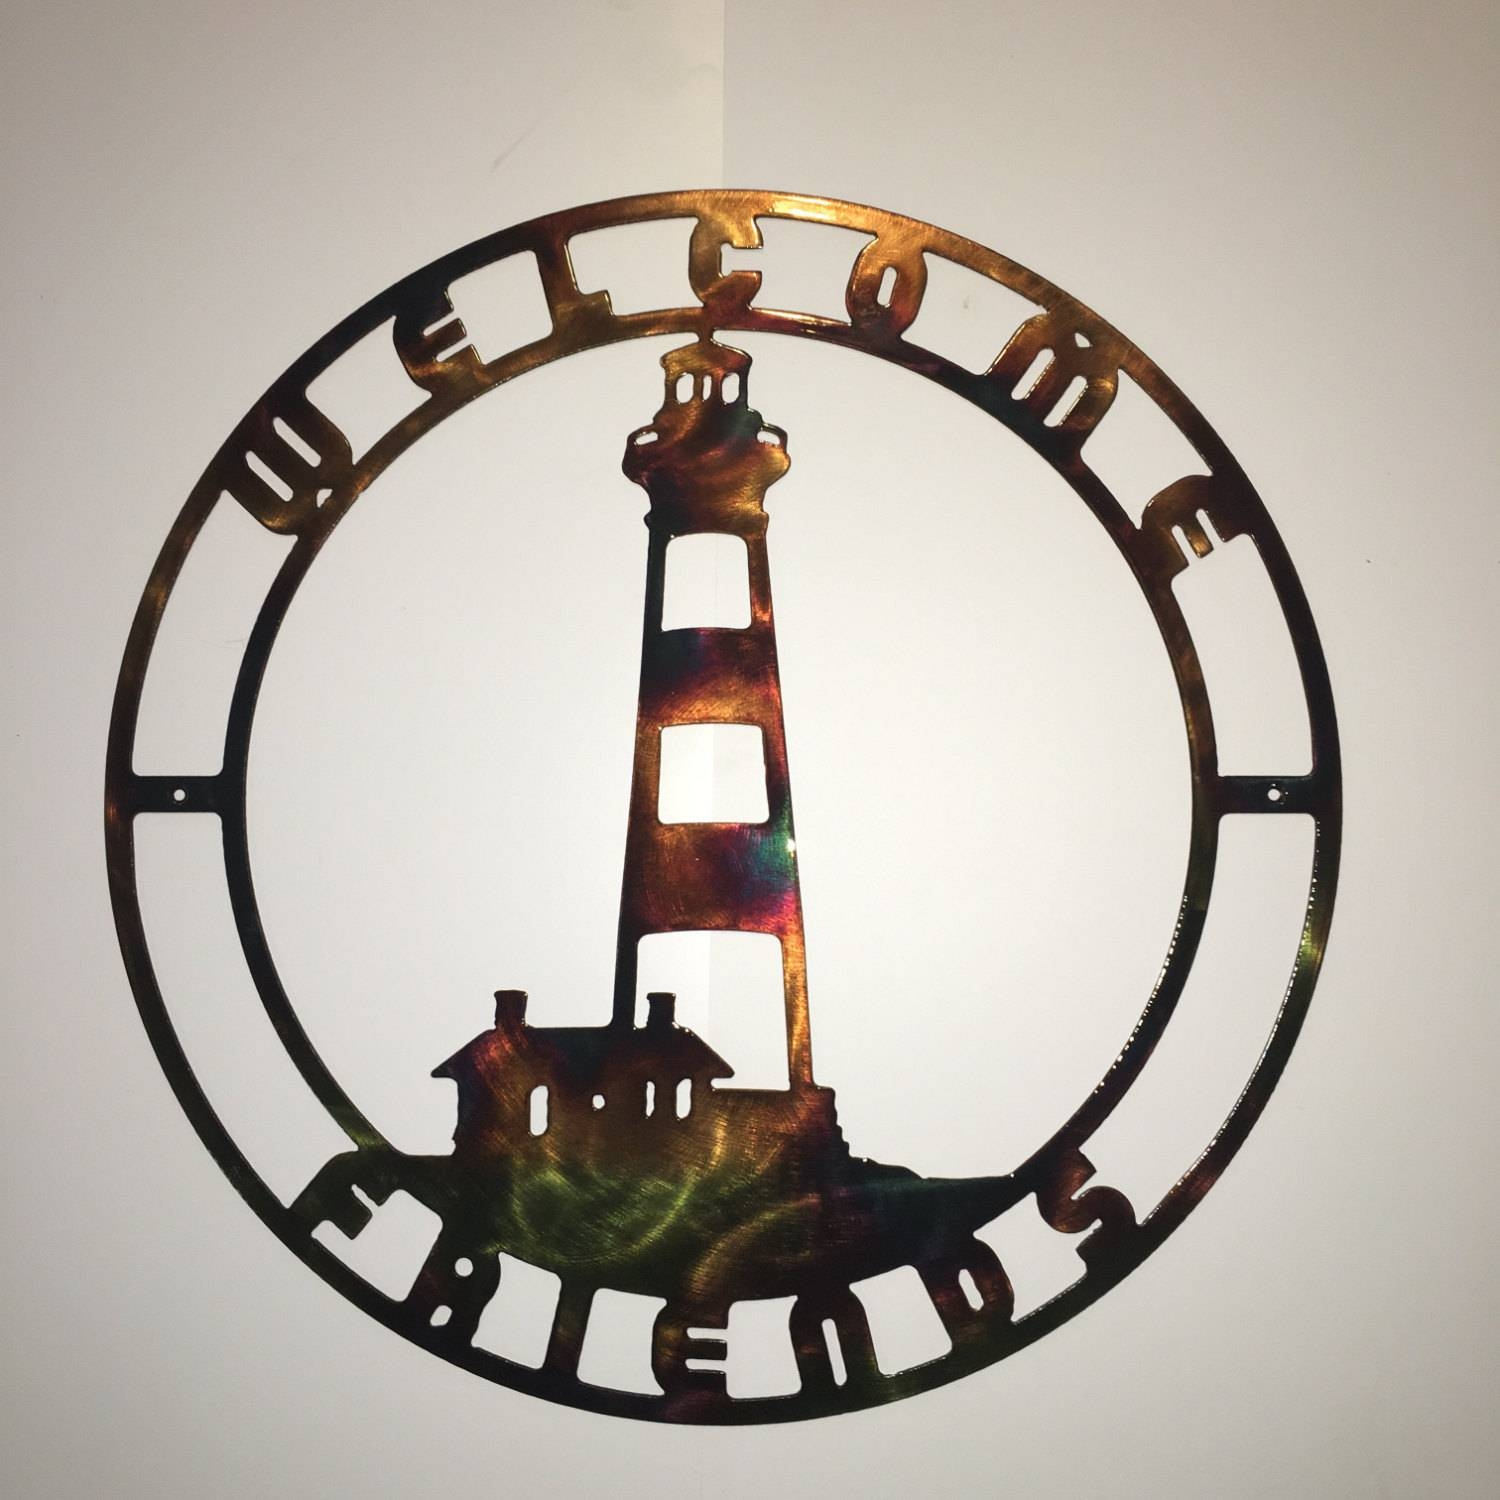 Bodie Island Nc Lighthouse Indoor Or Outdoor Plasma Cut Metal Wall Art Within Newest Plasma Cut Metal Wall Art (View 6 of 20)